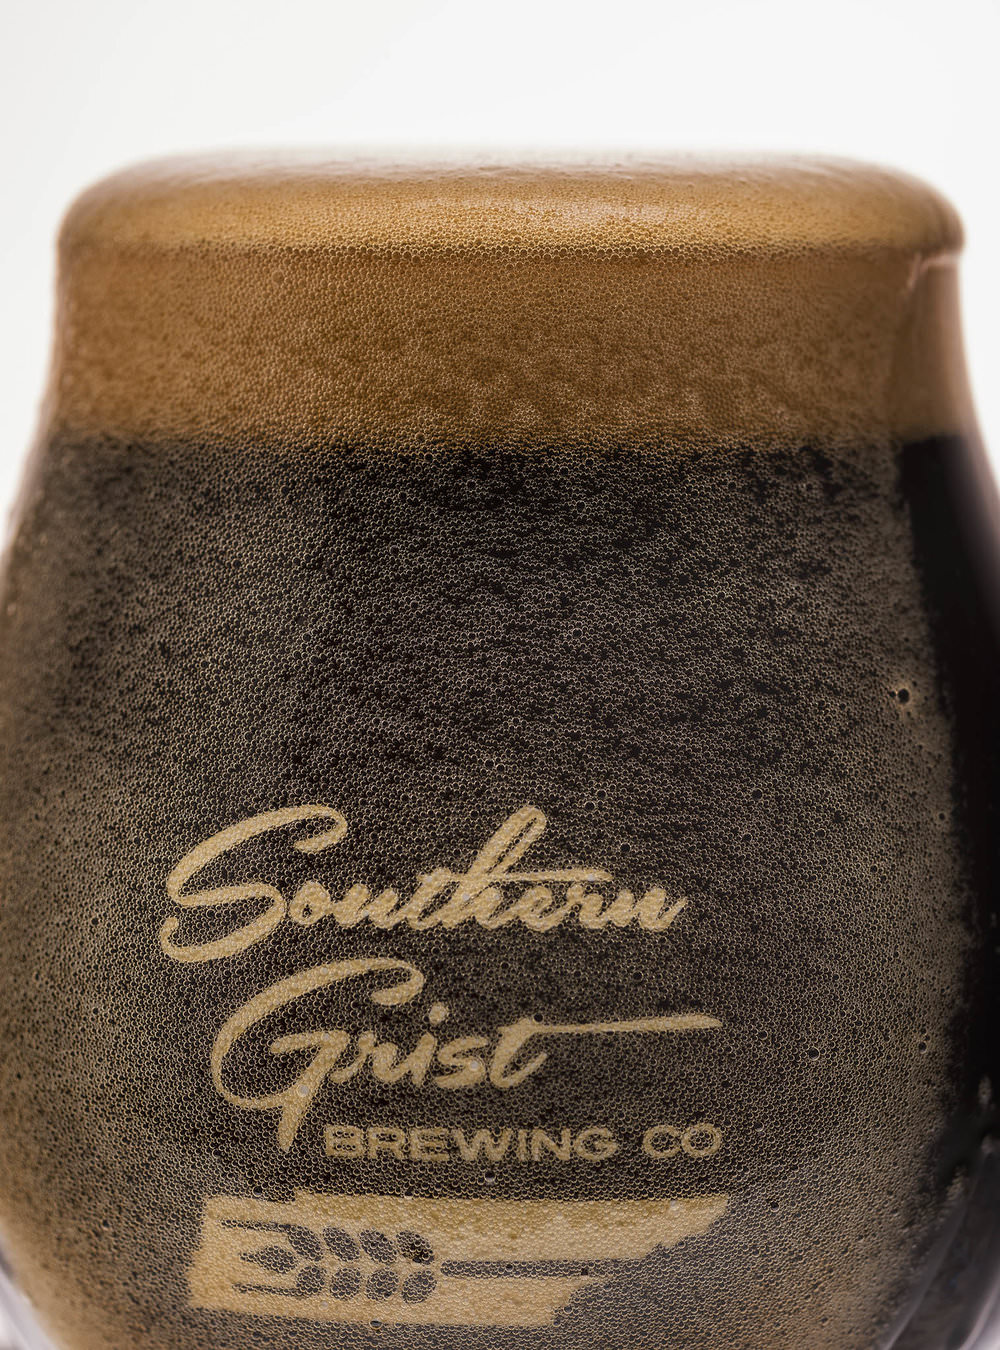 Southern-Grist-Brewing-1.jpg